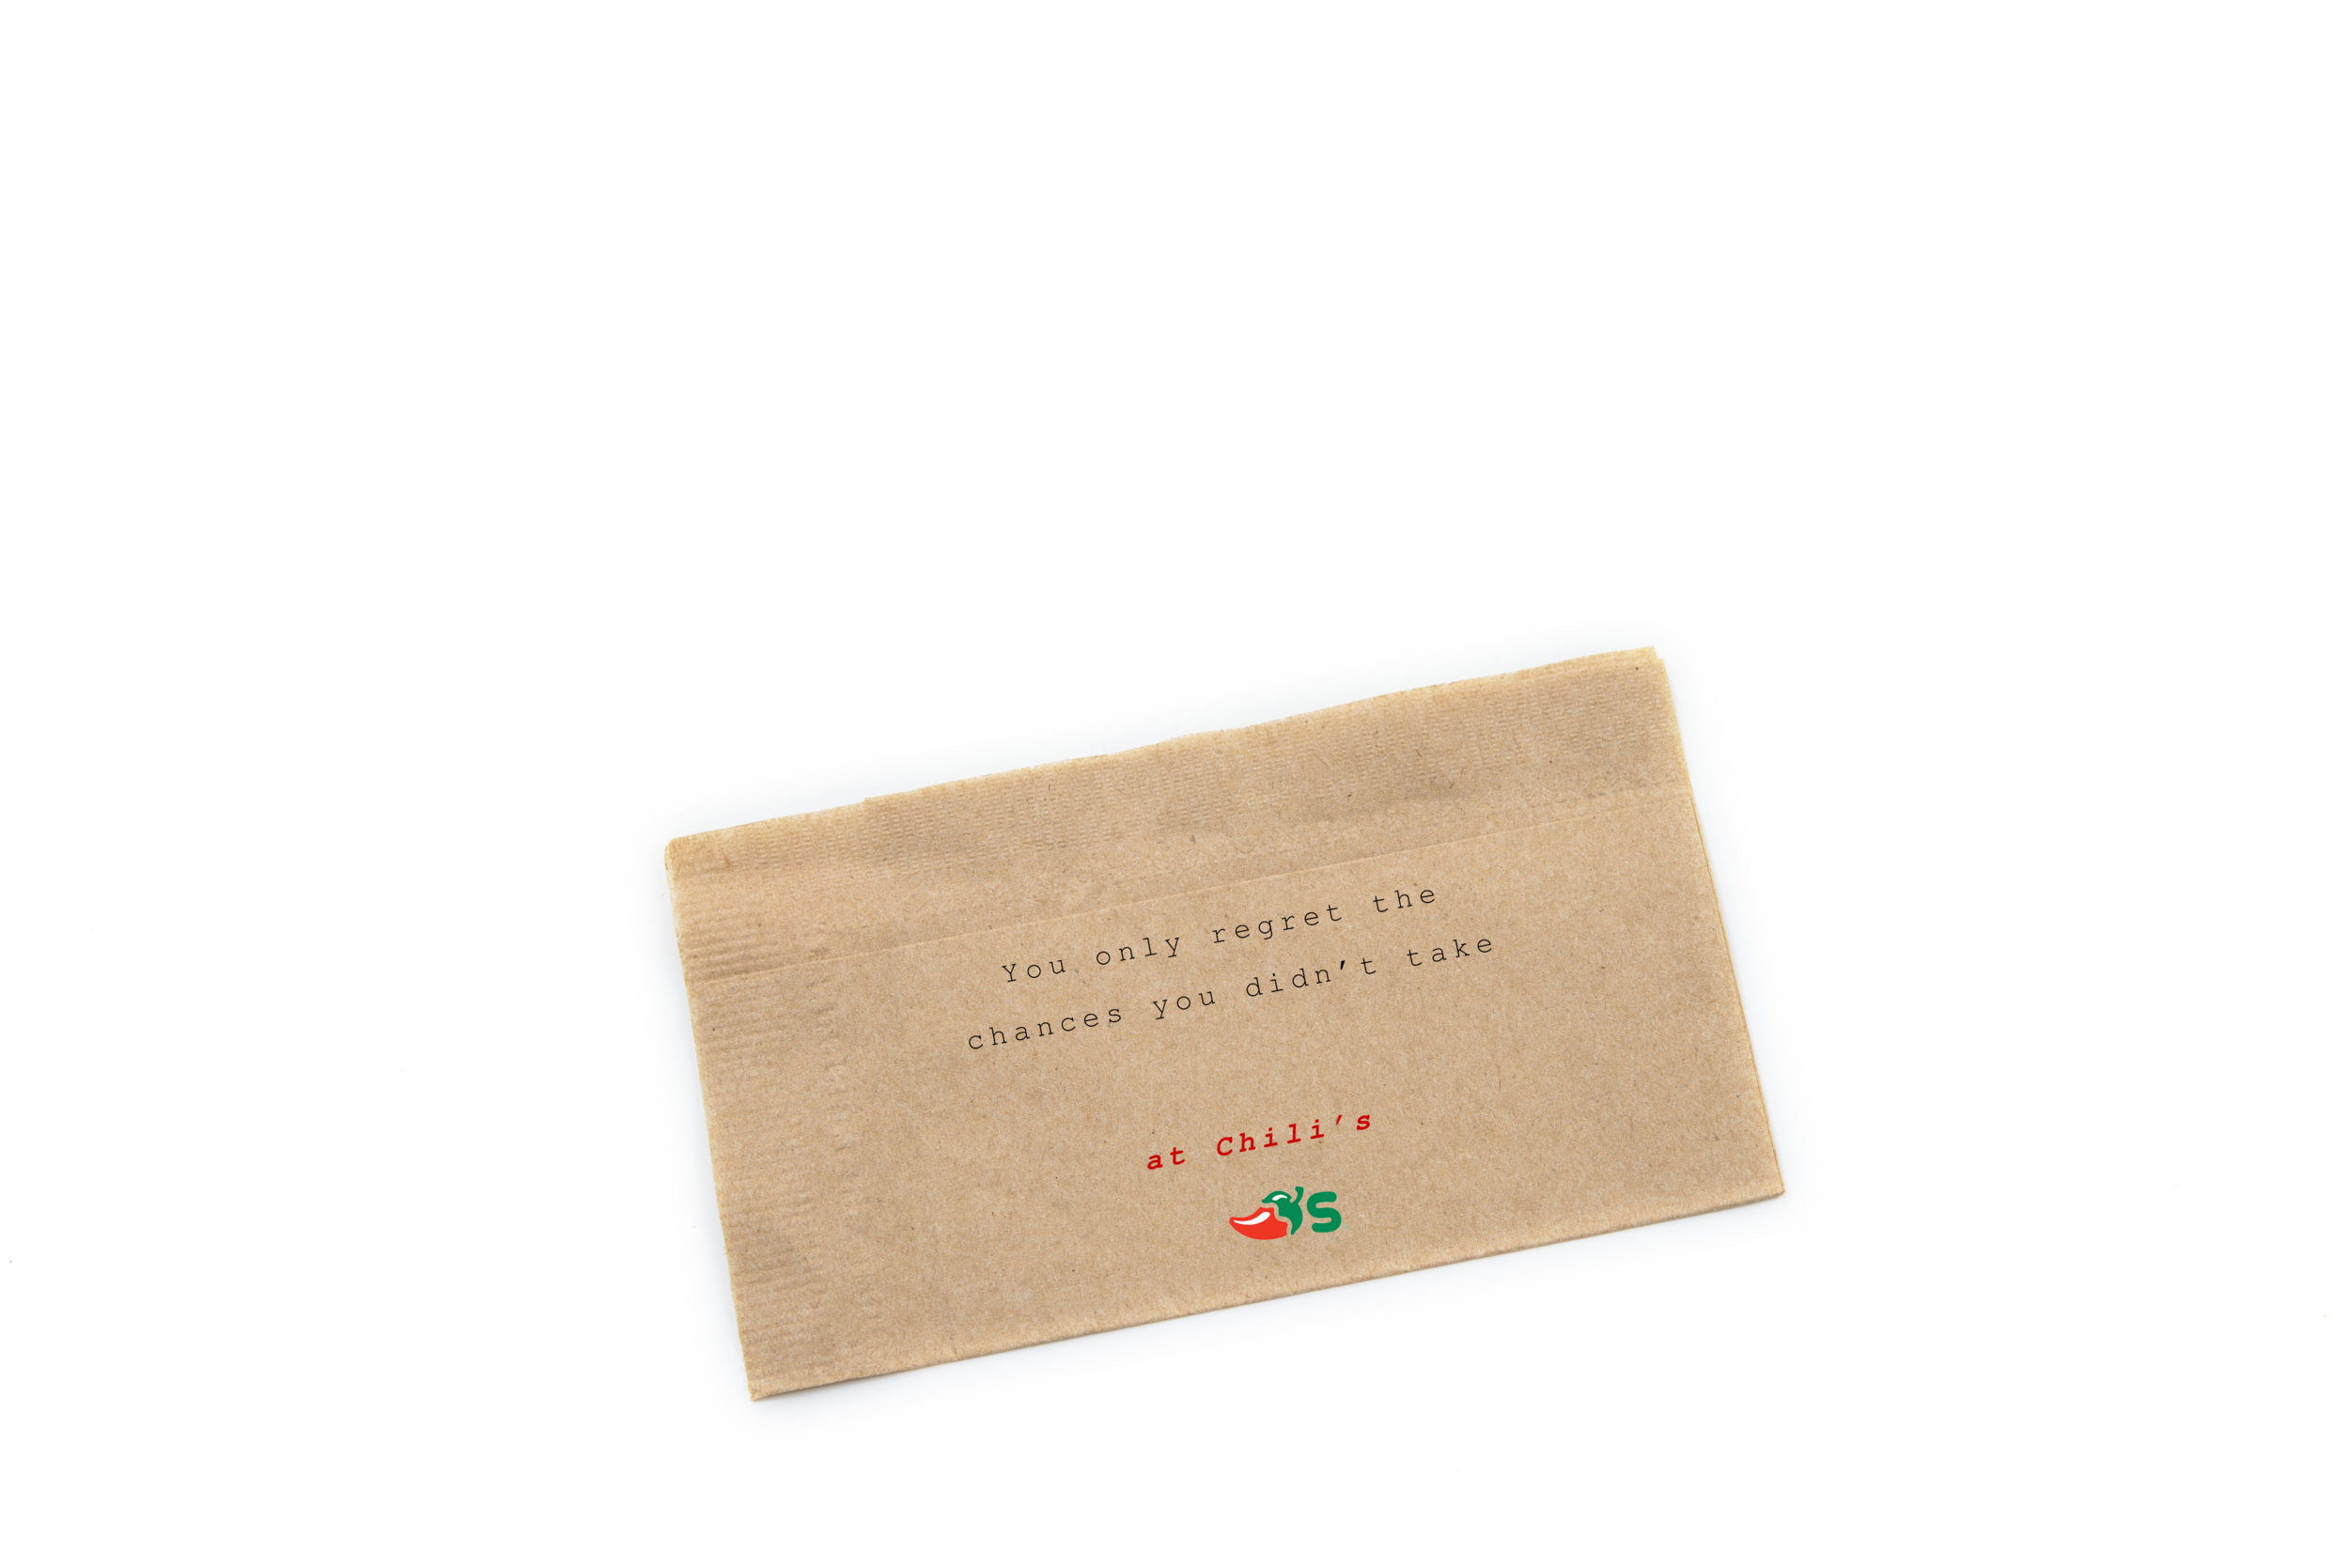 Napkin Fortune 5.png